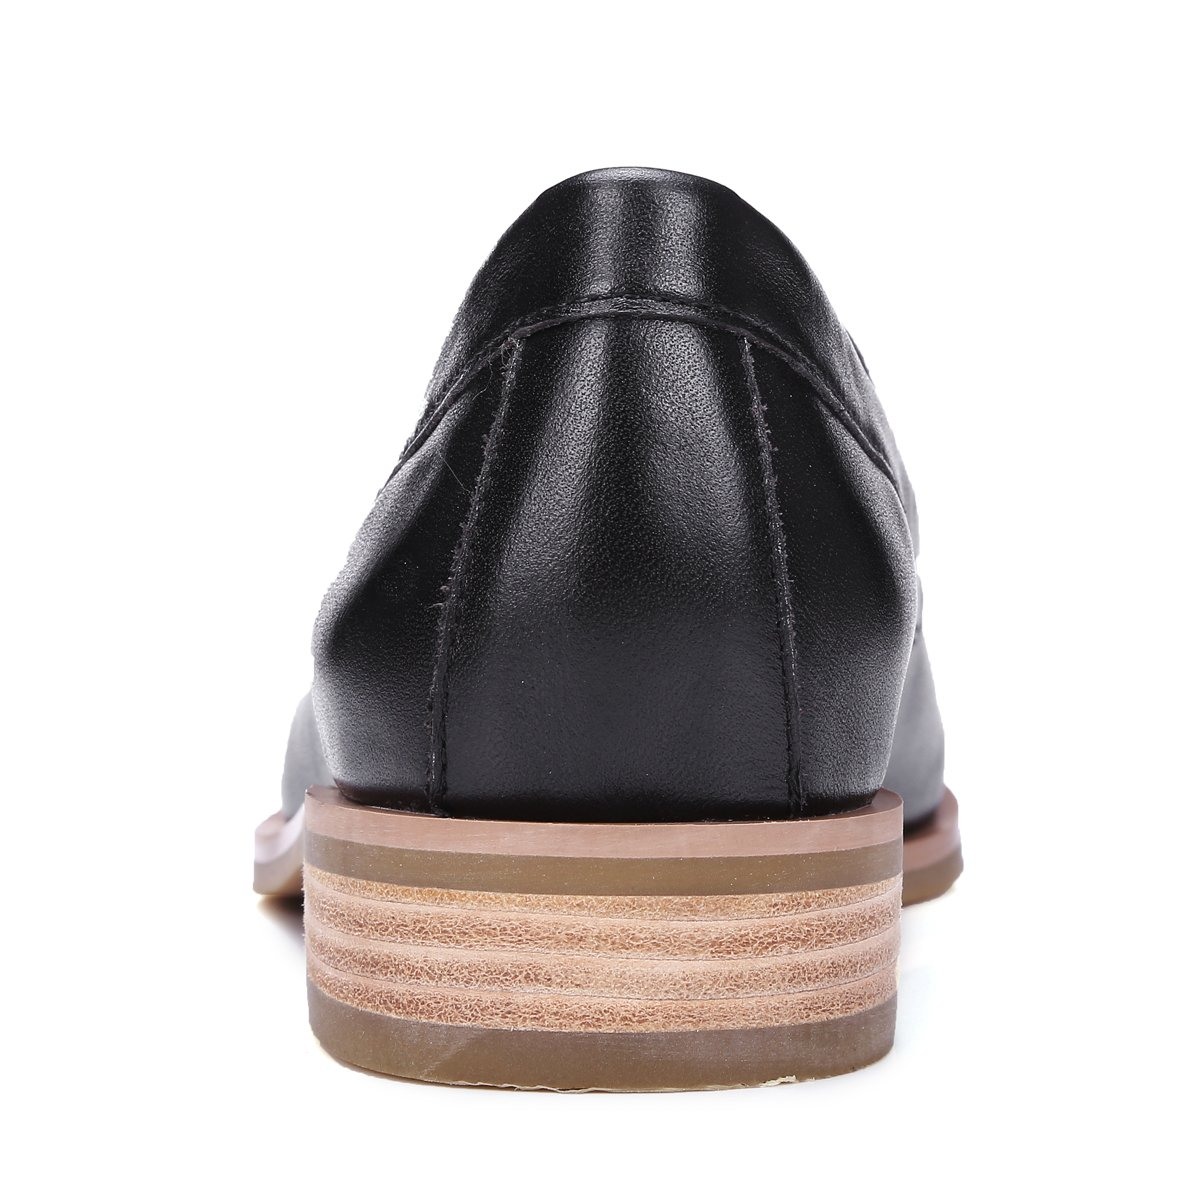 ONEENO Loafers for Women Comfort Casual Slip on Low Heel Cowhide Leather Flat Shoes Black Size 9 US by ONEENO (Image #5)